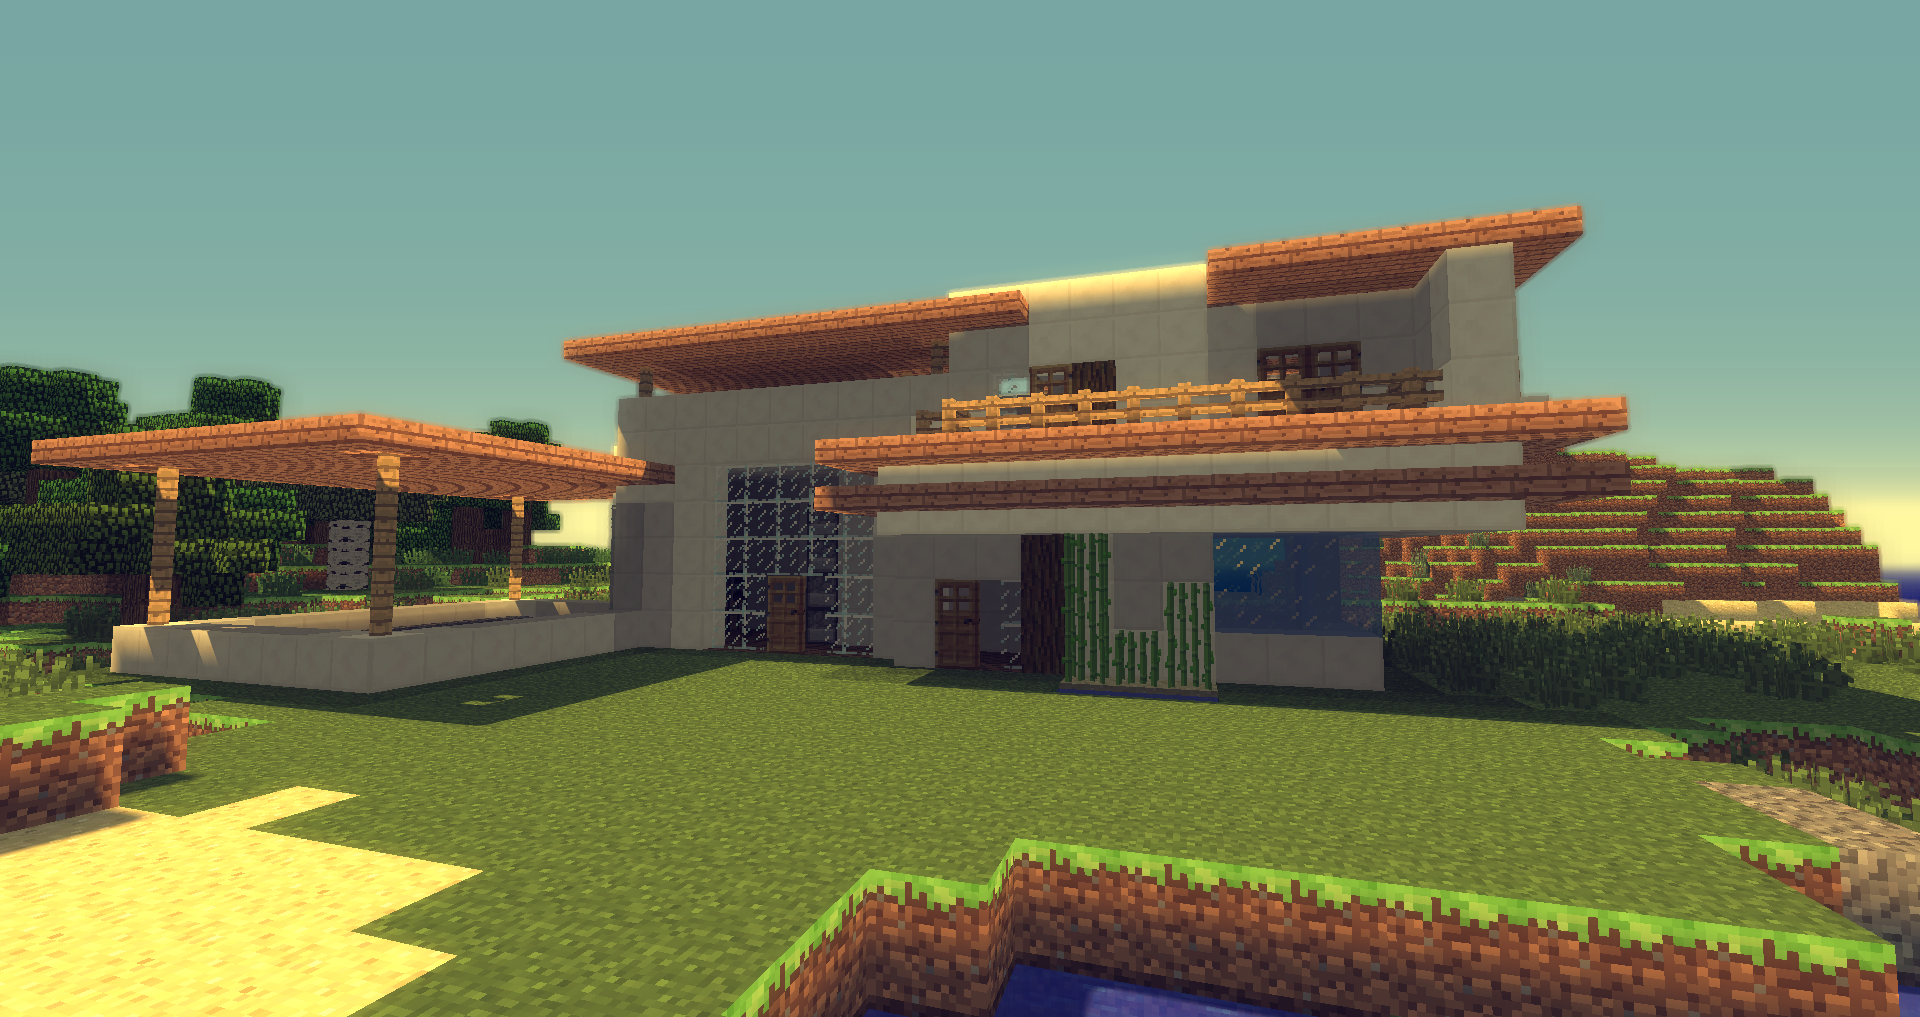 Mordern Minecraft Home Wallpaper Image